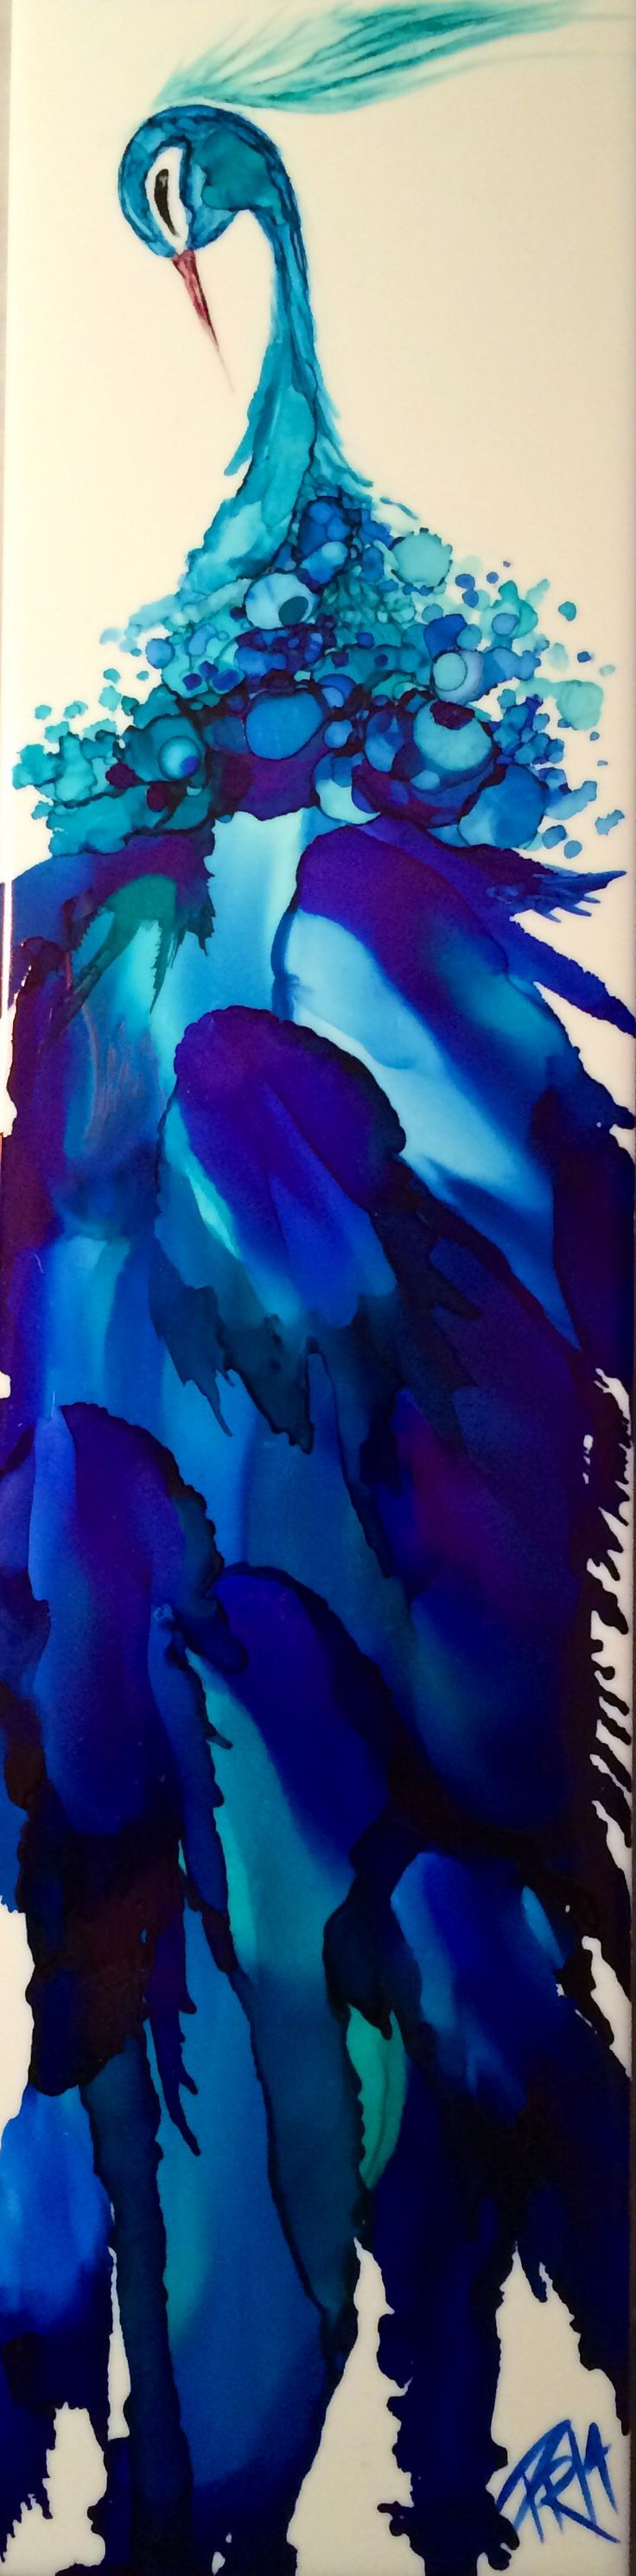 Indigo Peacock -Alcohol Ink on ceramic tile                                                                                                                                                                                 More